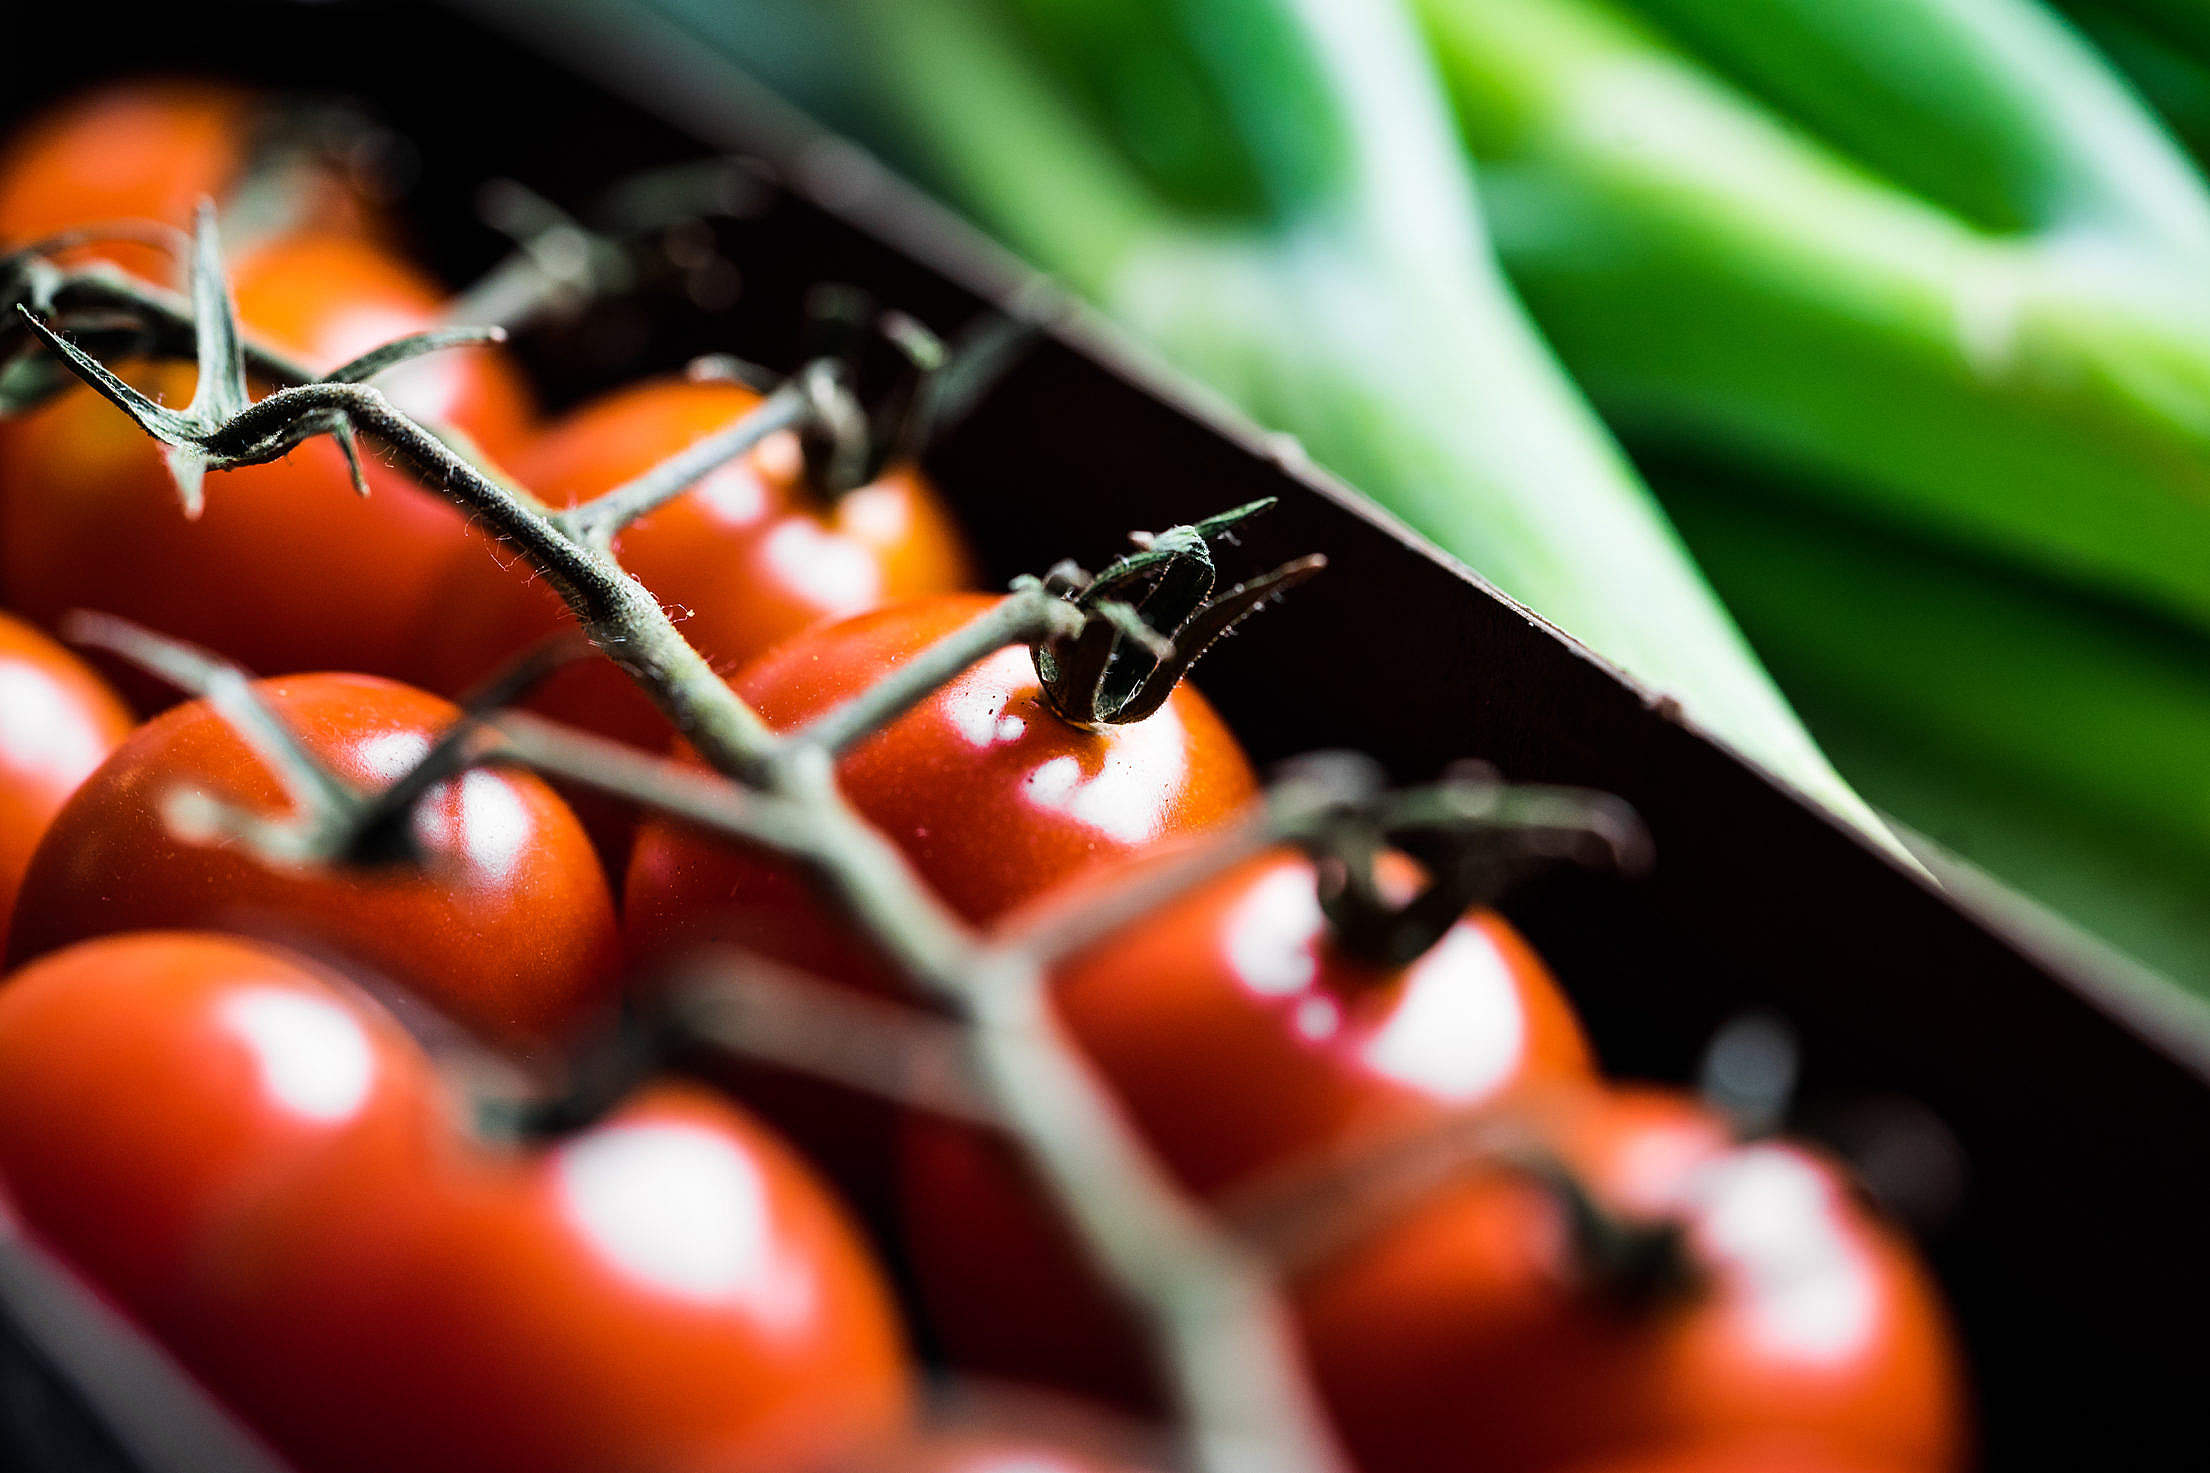 Download Cherry Tomatoes and Pizza Free Stock Photo